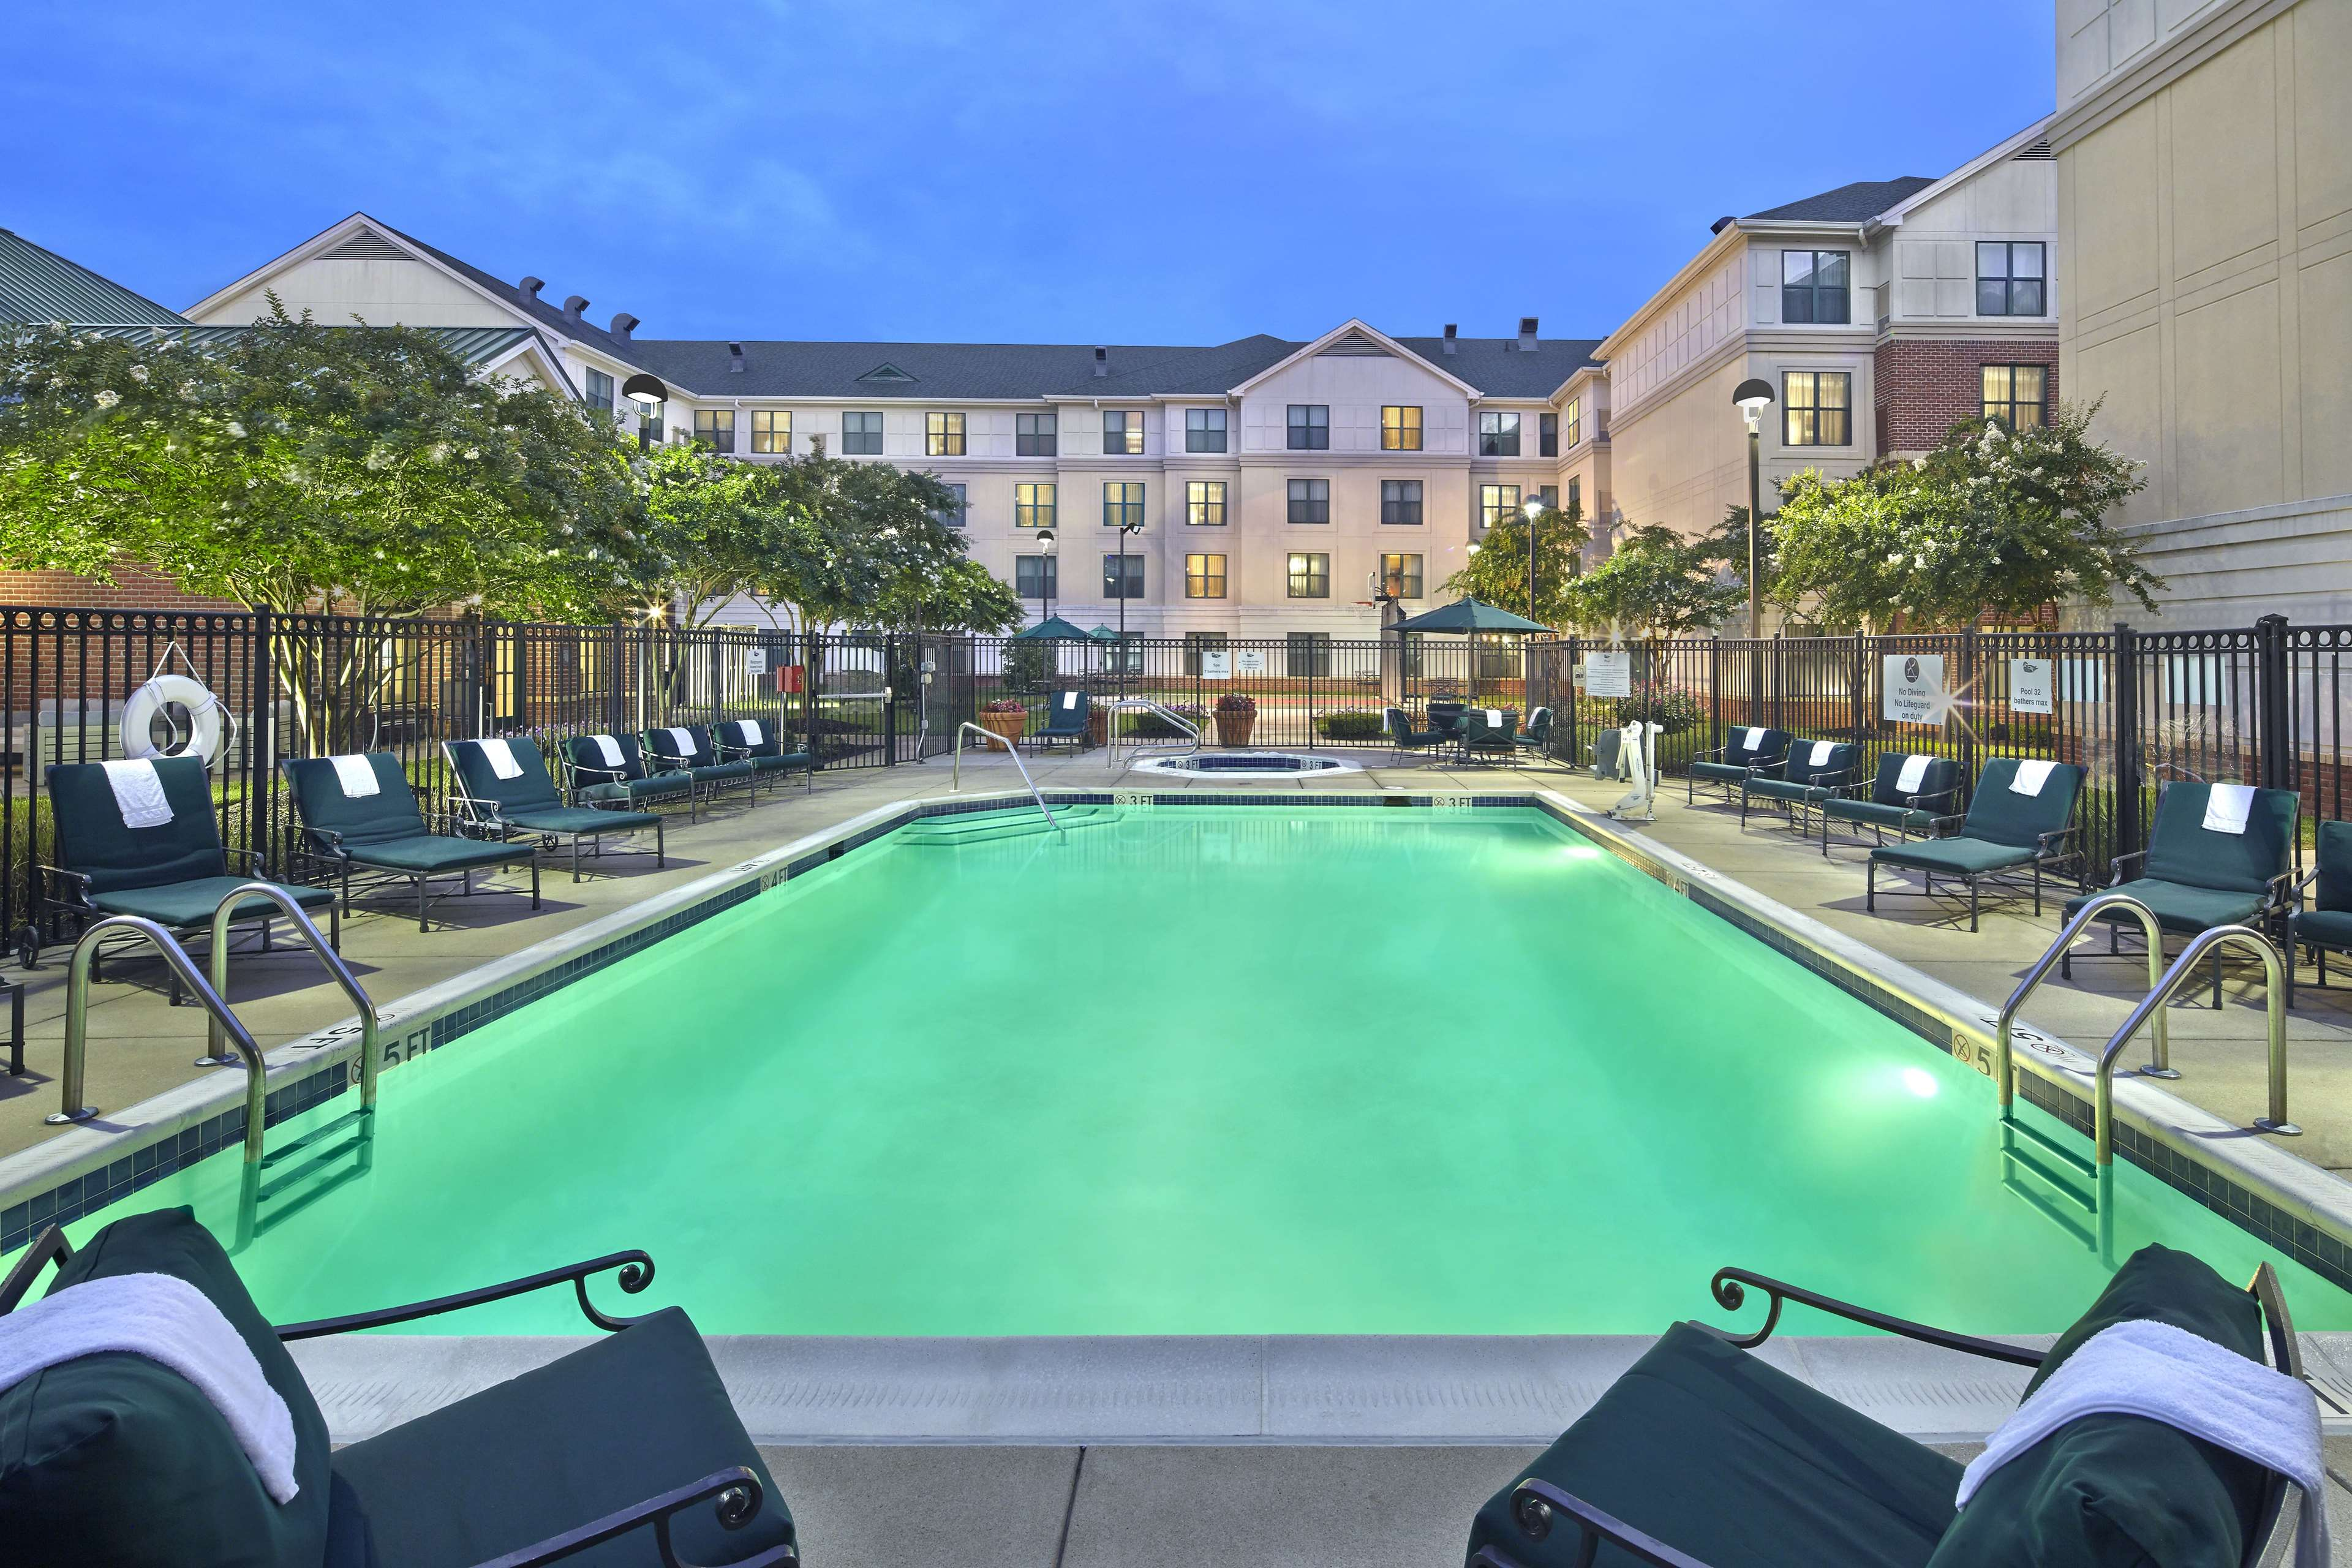 Homewood Suites by Hilton Columbia image 7